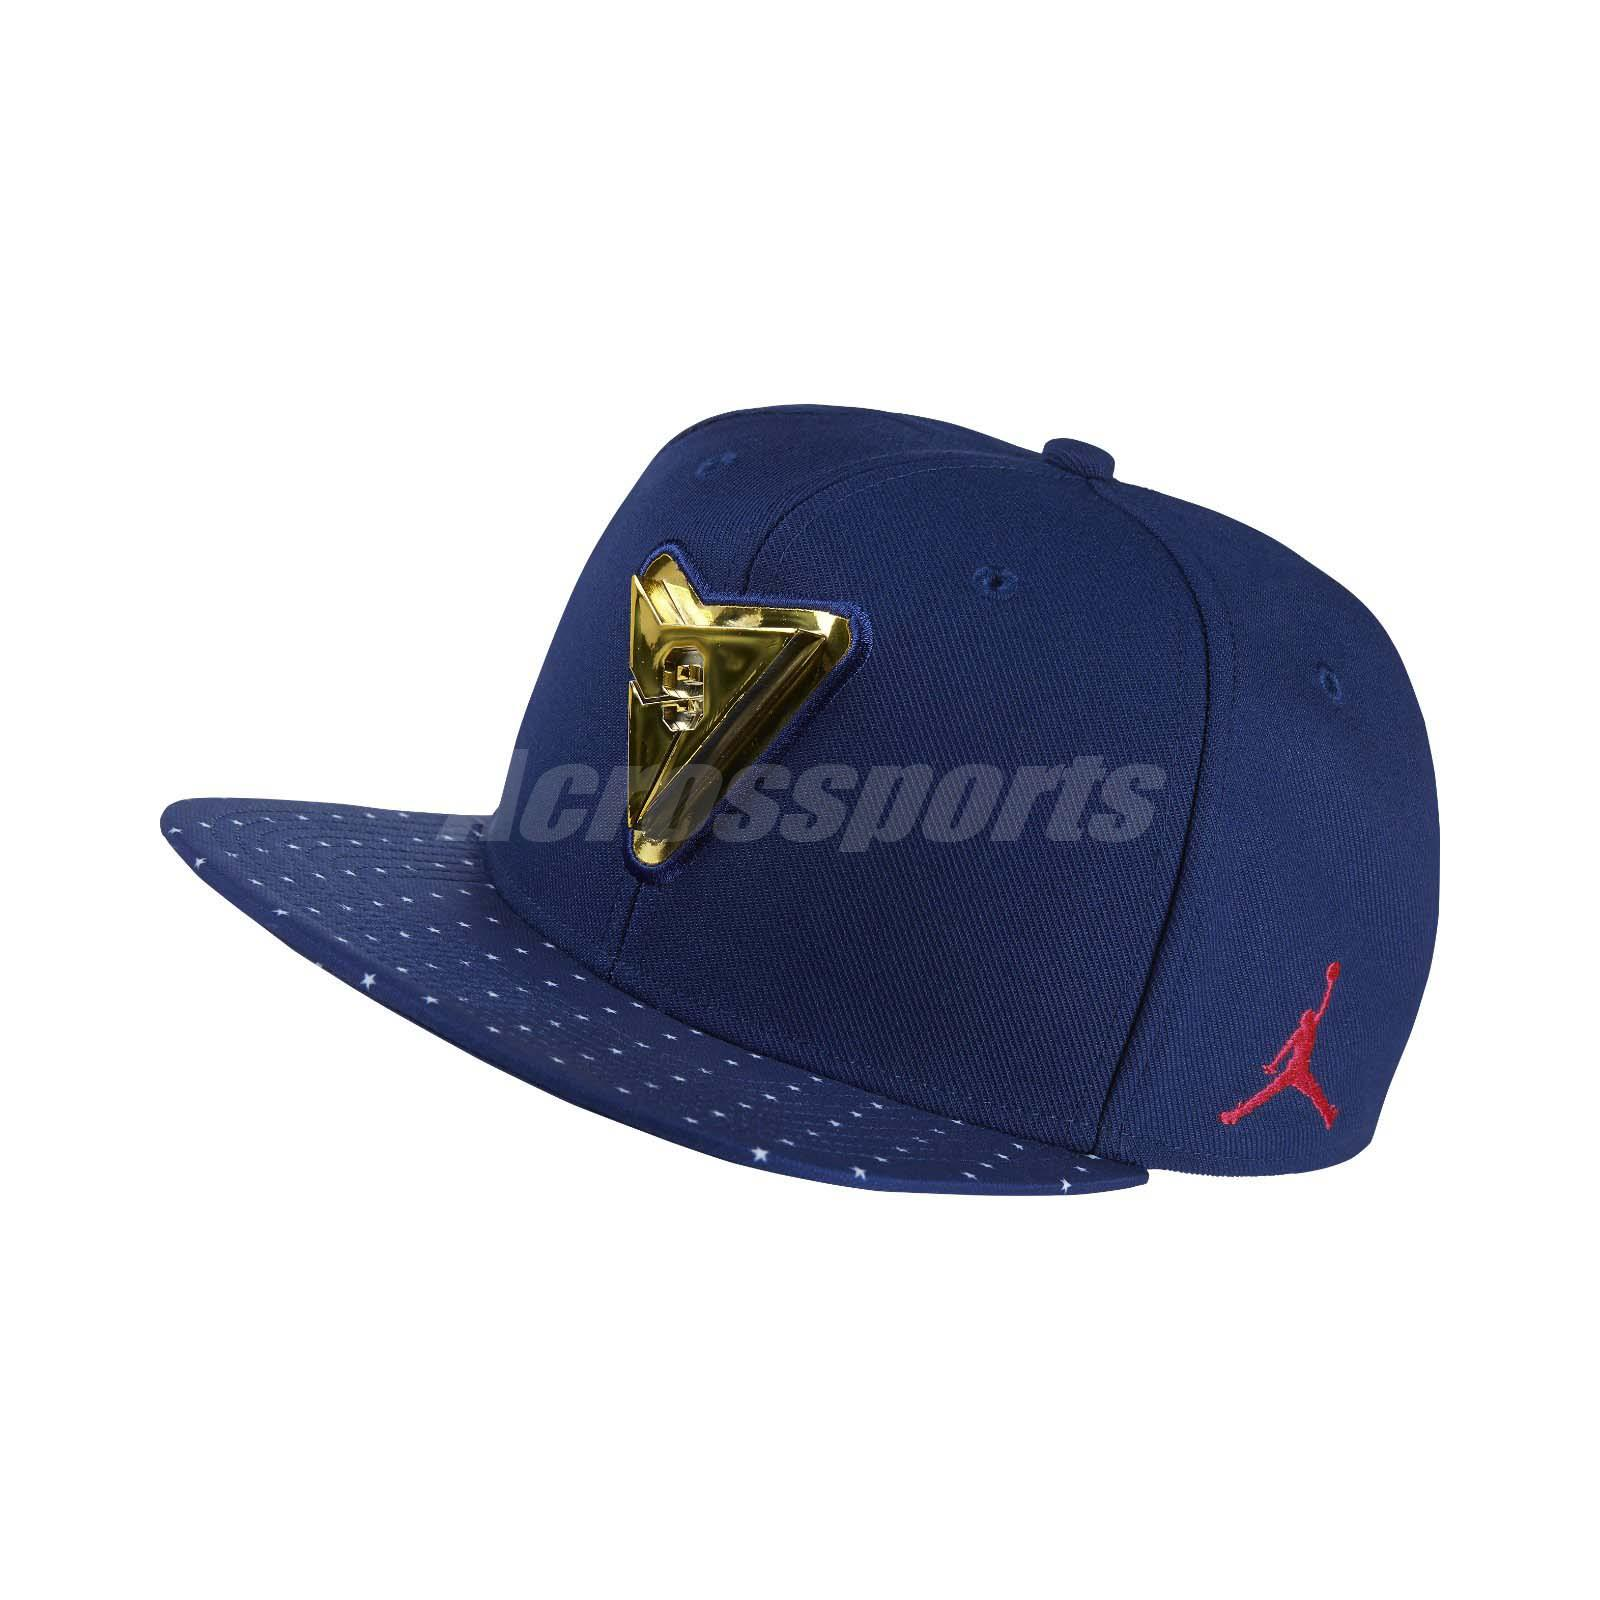 7d5b434c738 Nike Air Jordan 7 Retro Barcelona Olympics Snapback Adjustable Hat  801771-455